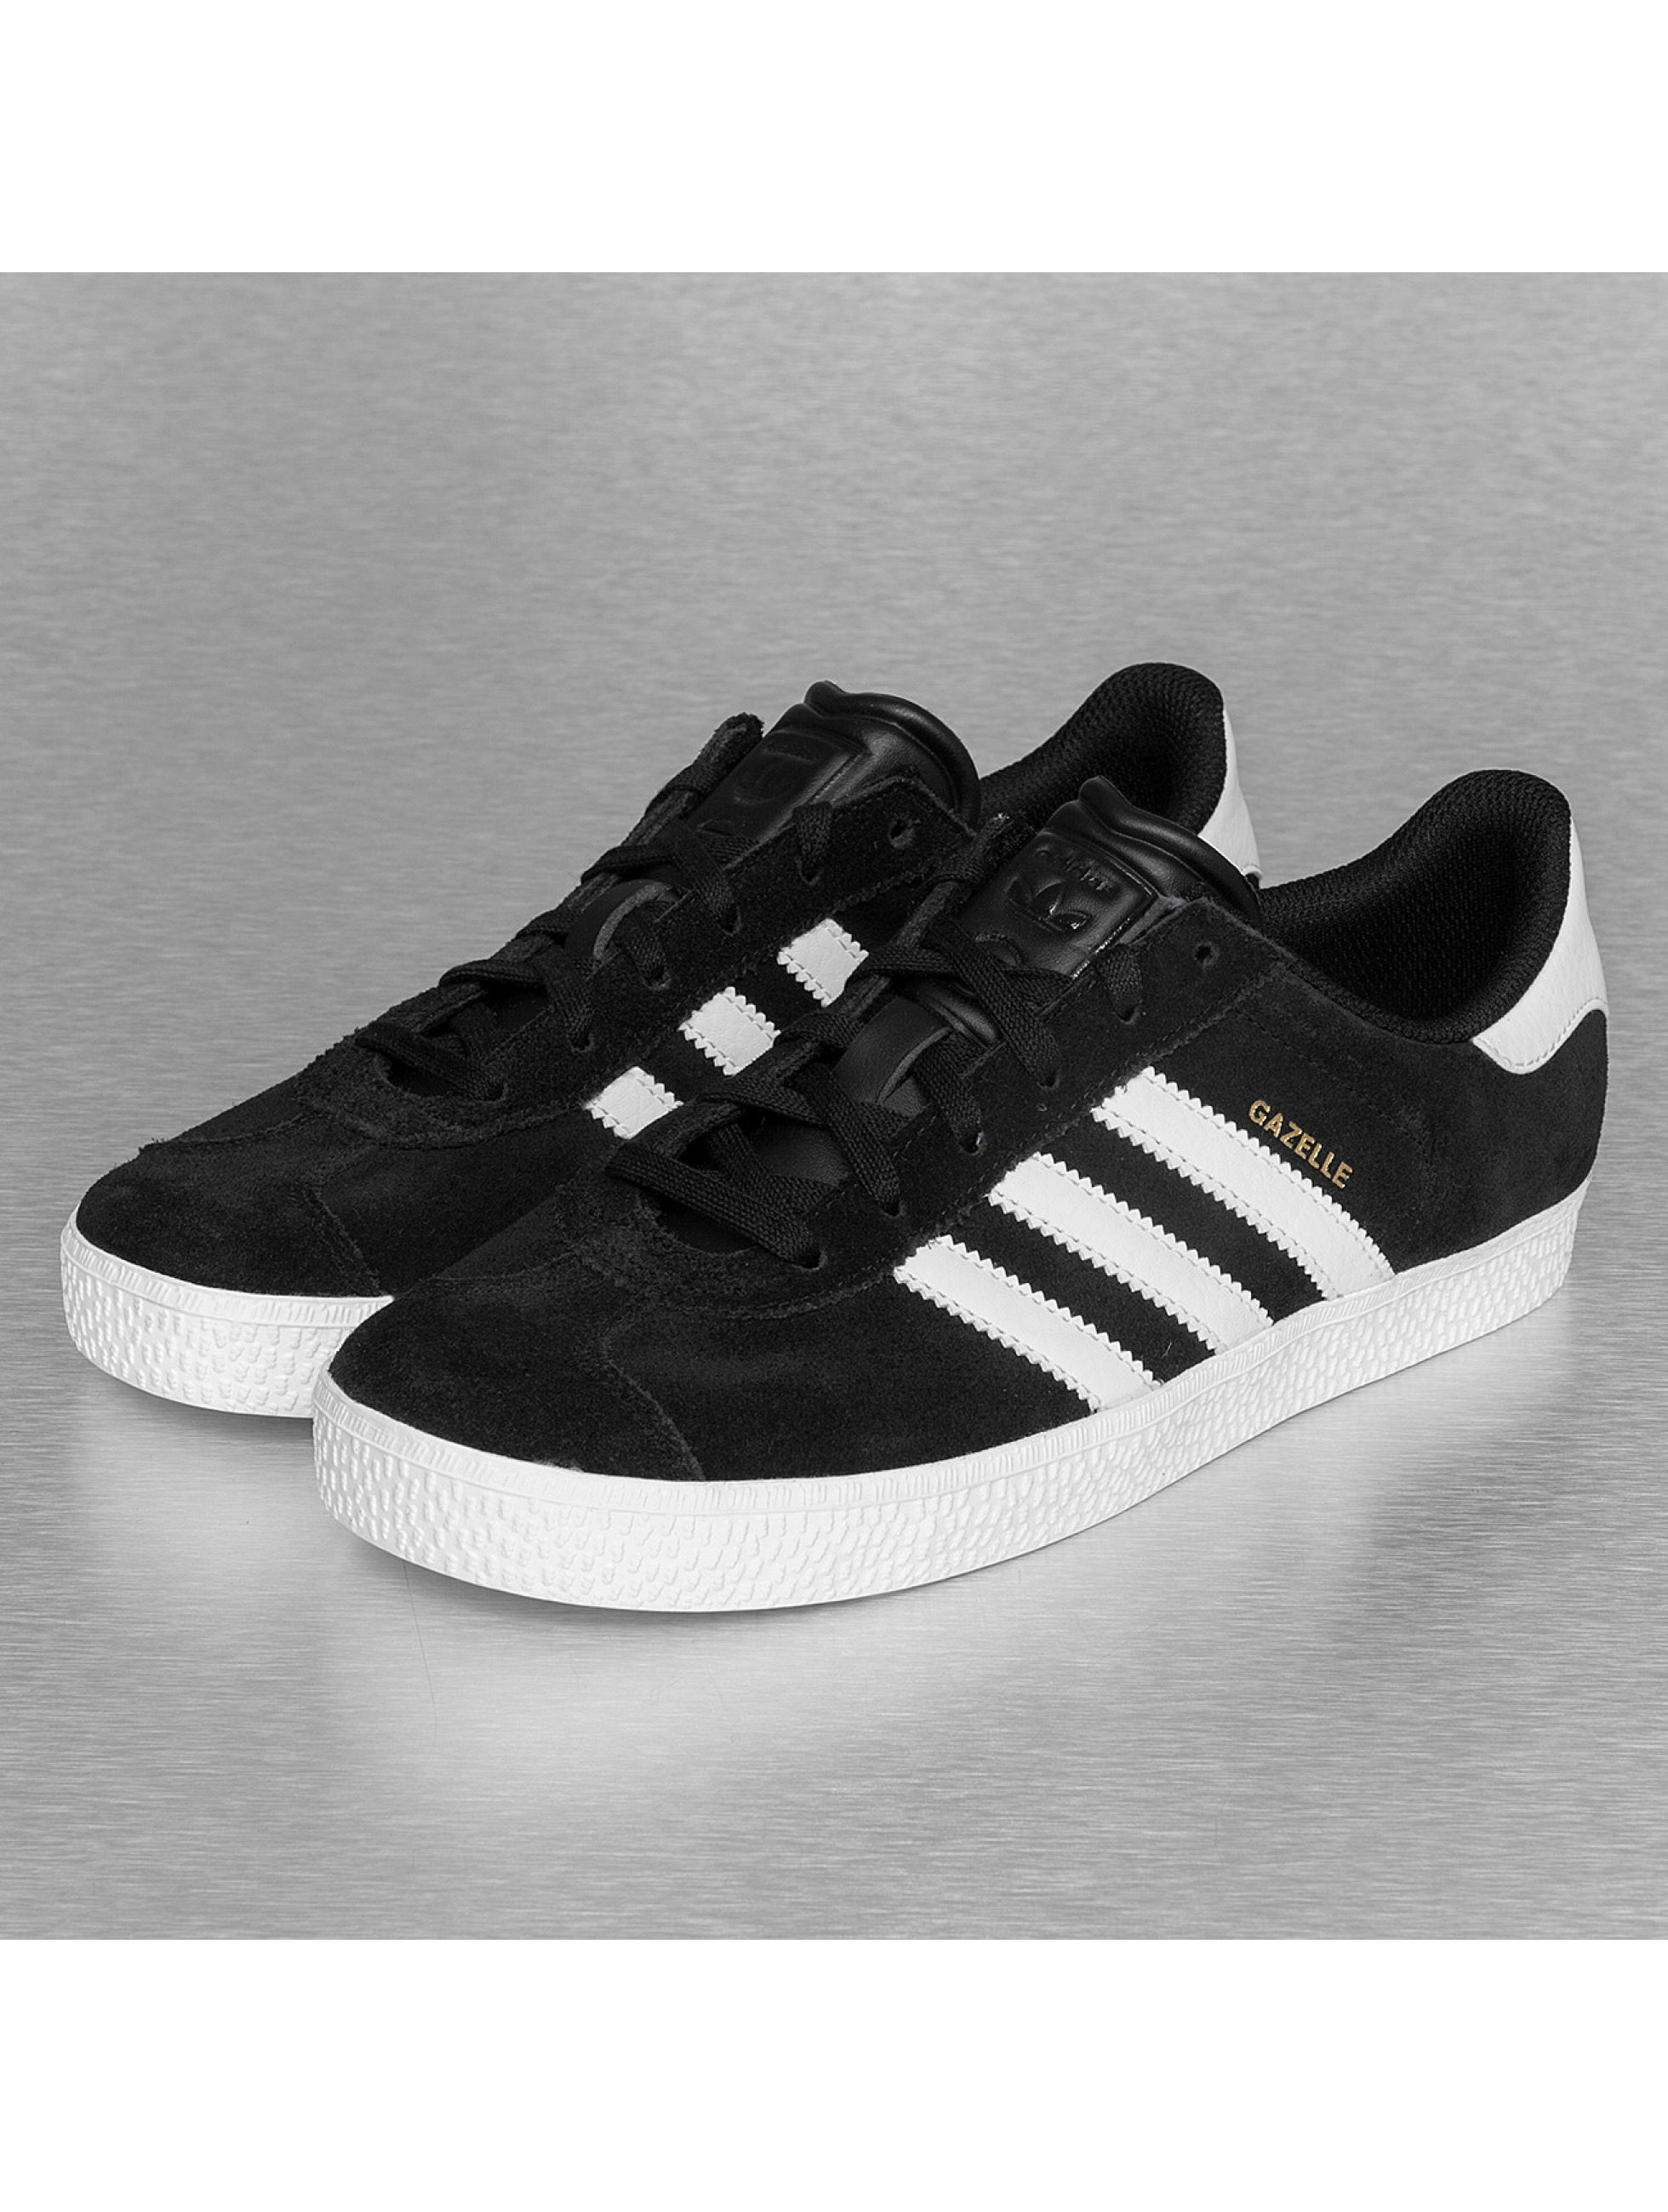 Buy cheap Online,adidas gazelle trainers Fiero Fluid Power